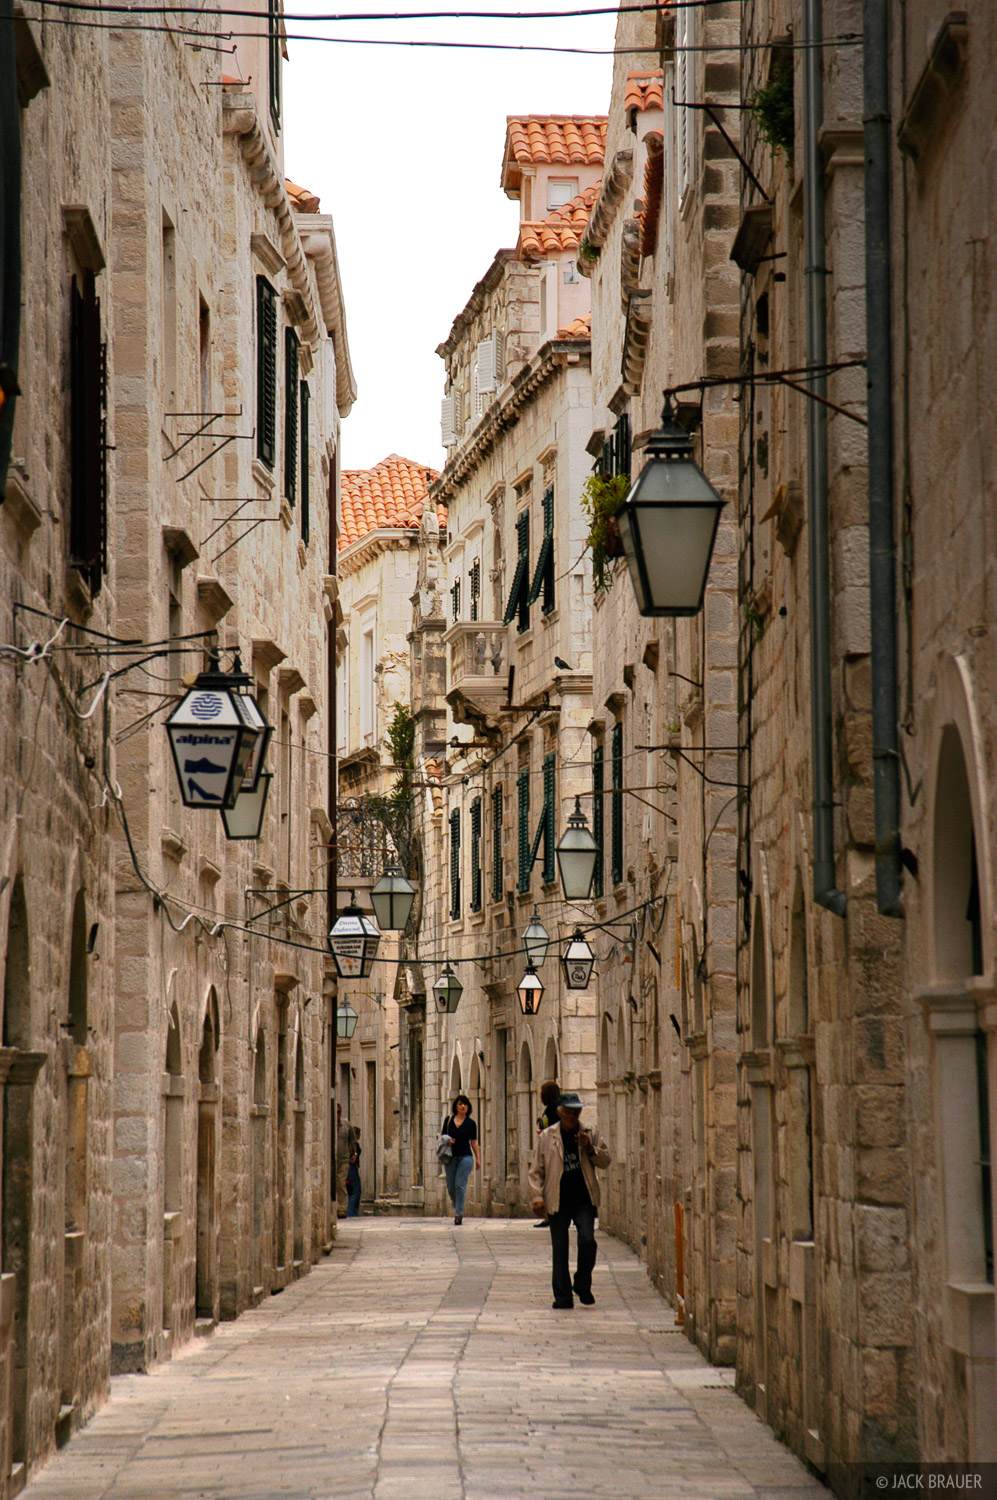 oldtown croatia ways street - photo #10